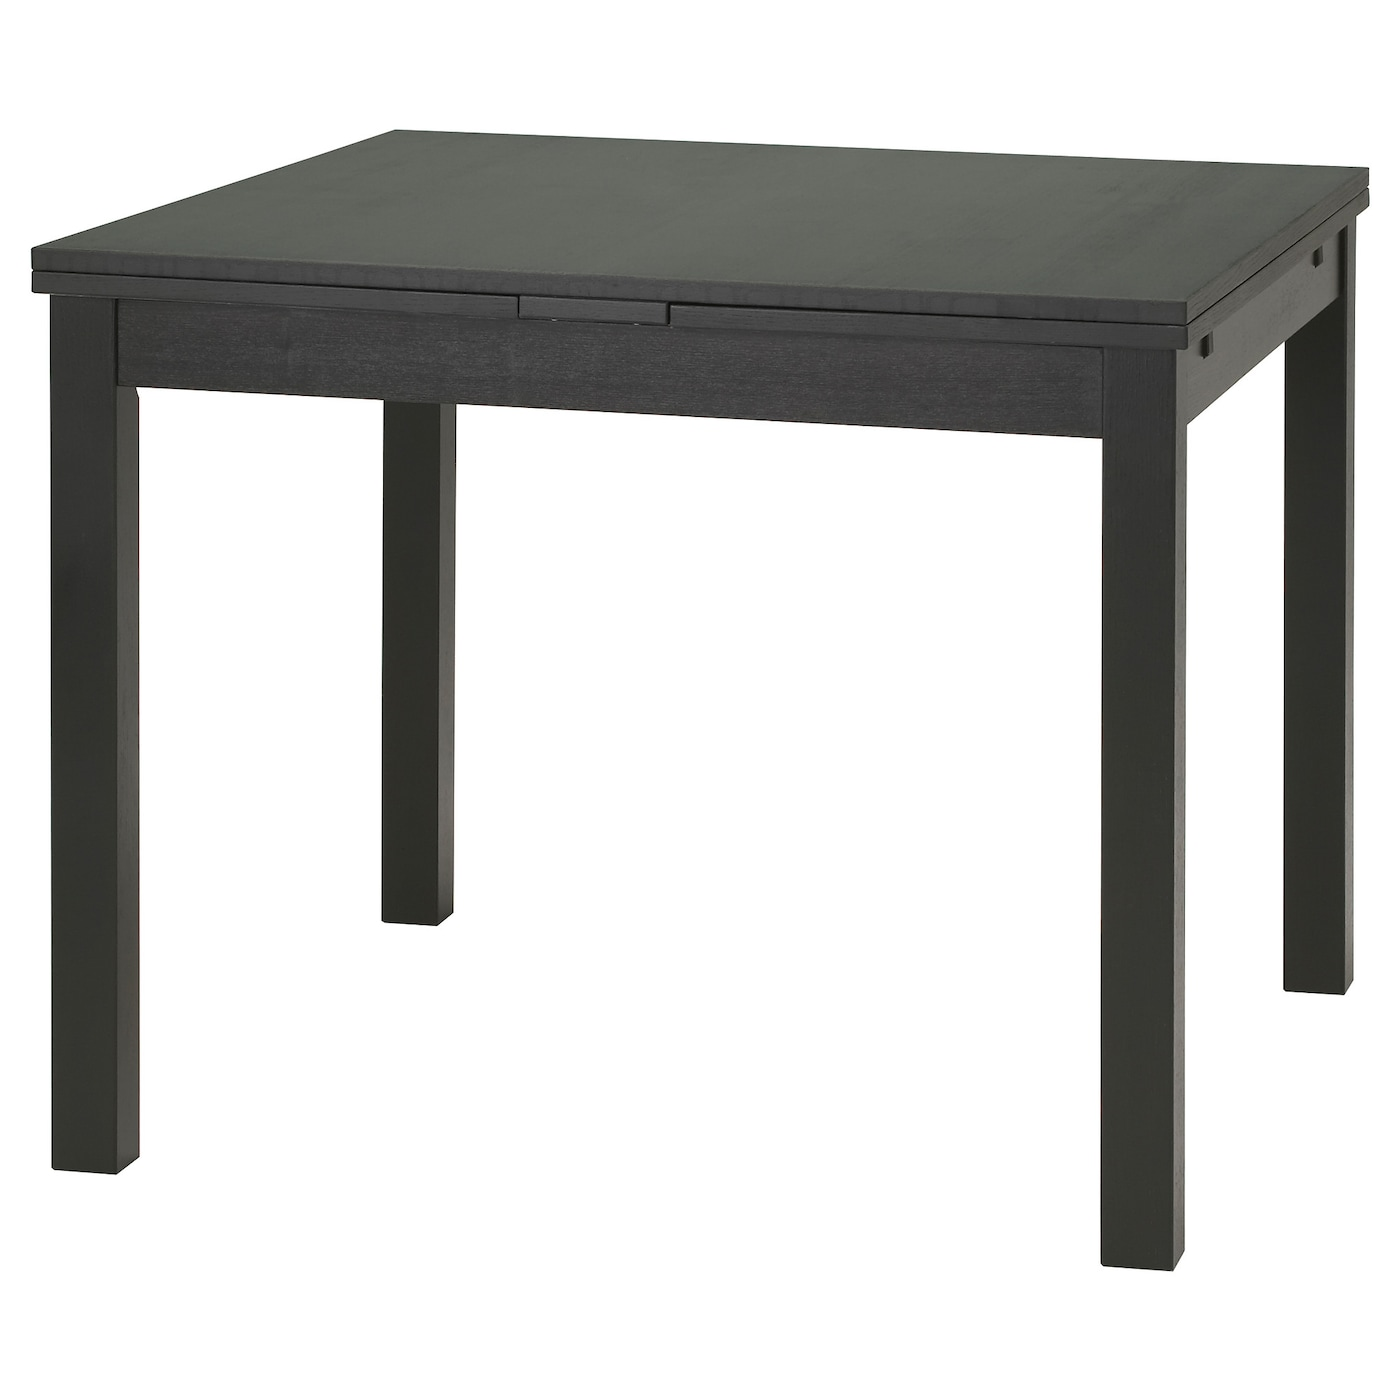 Bjursta extendable table brown black 90 129 168x90 cm ikea for Table manger ikea